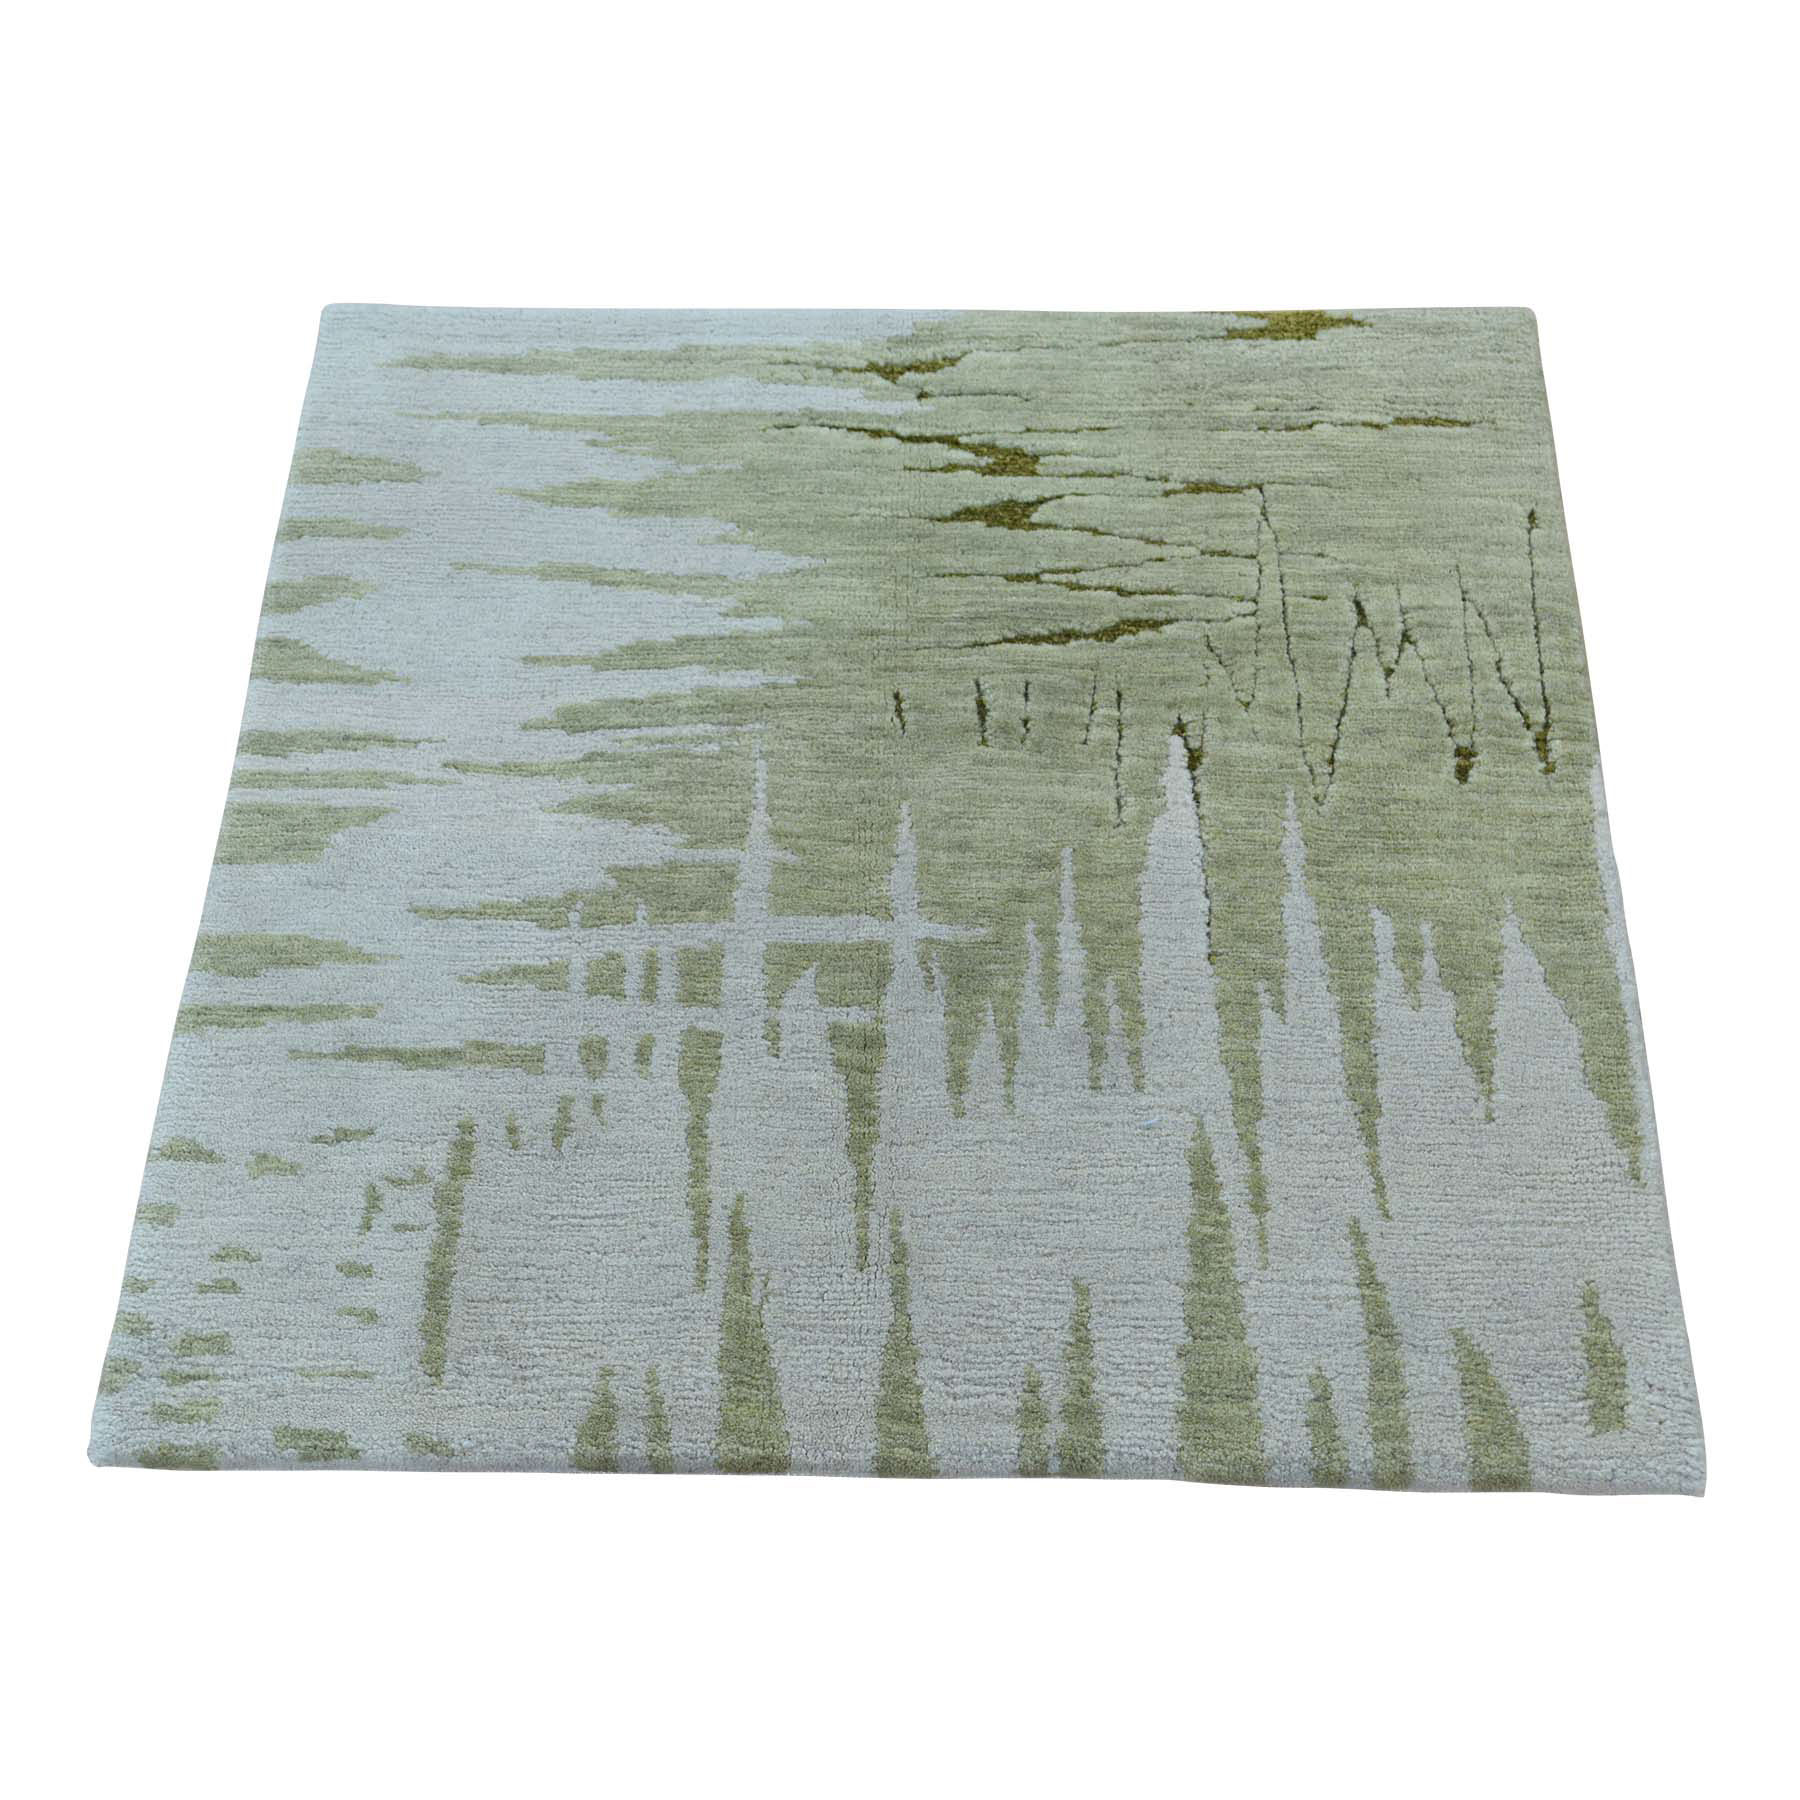 2'x2' Abstract Design Modern Wool and Silk Hand-Knotted Oriental Rug